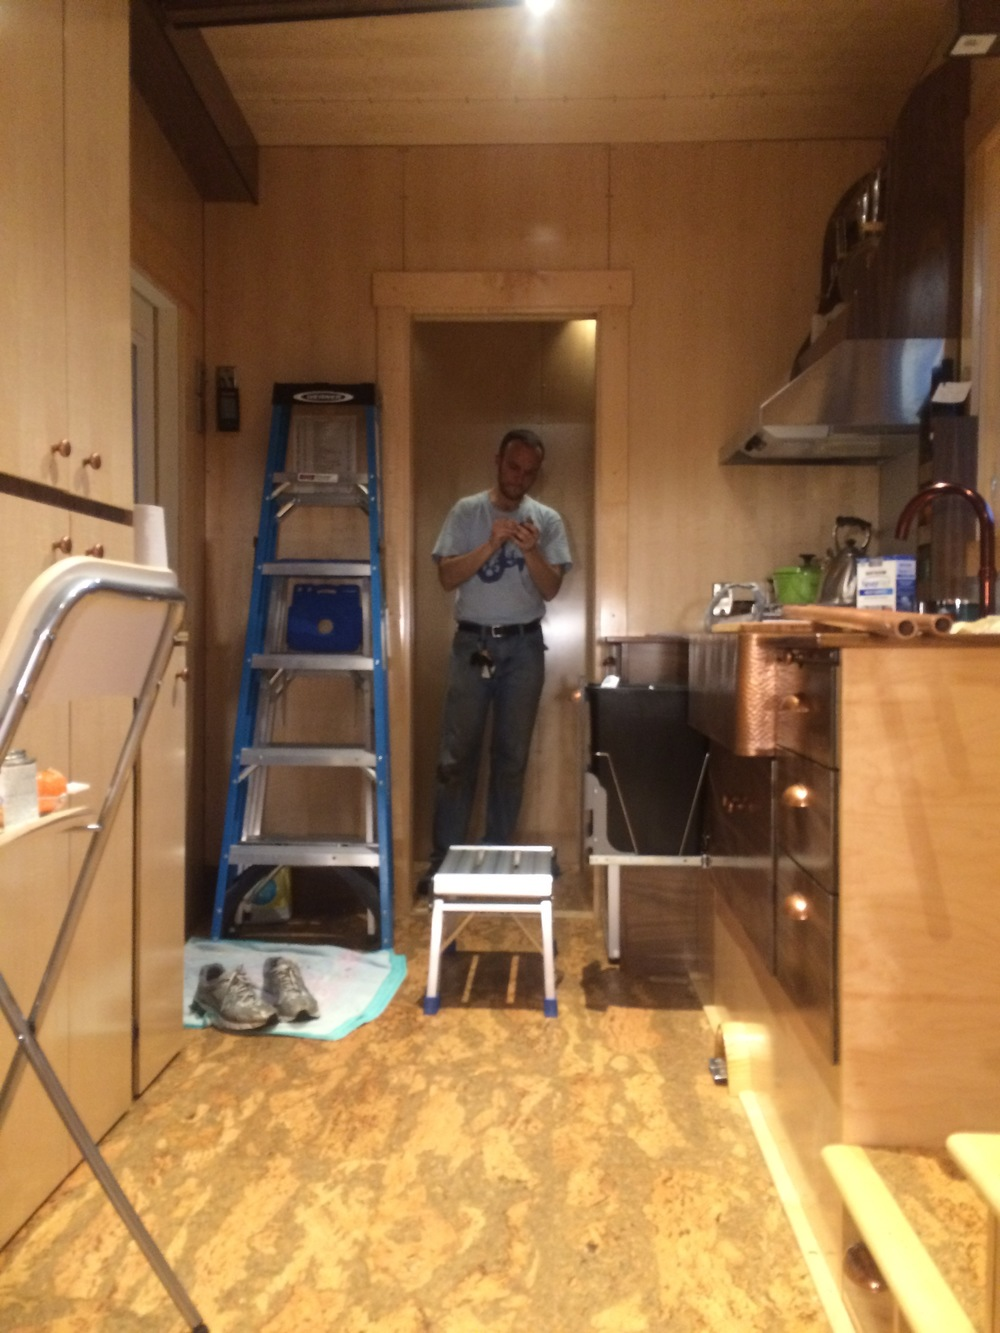 How To Build A Shoji Door From Purebond Plywood The Building